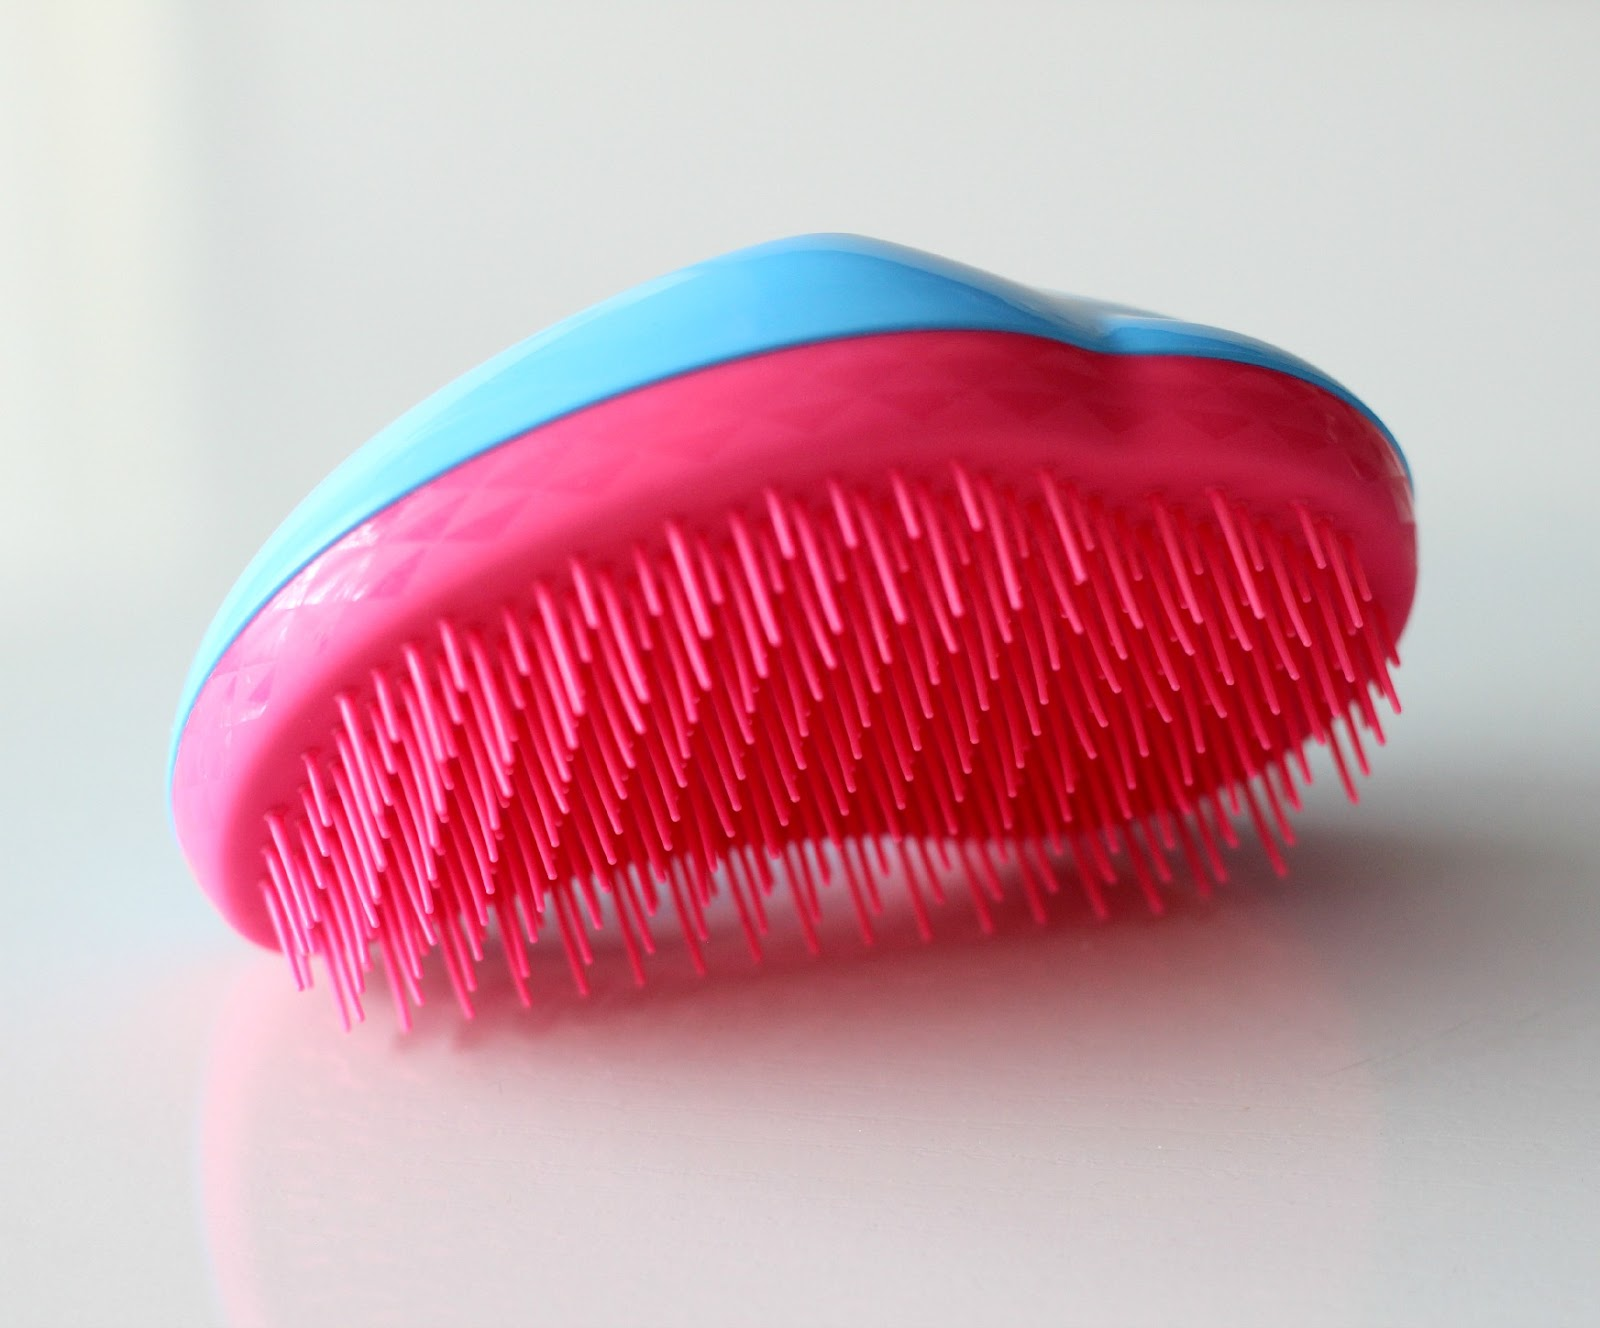 The Wet Brush vs Tangle Teezer | Which One Works Best